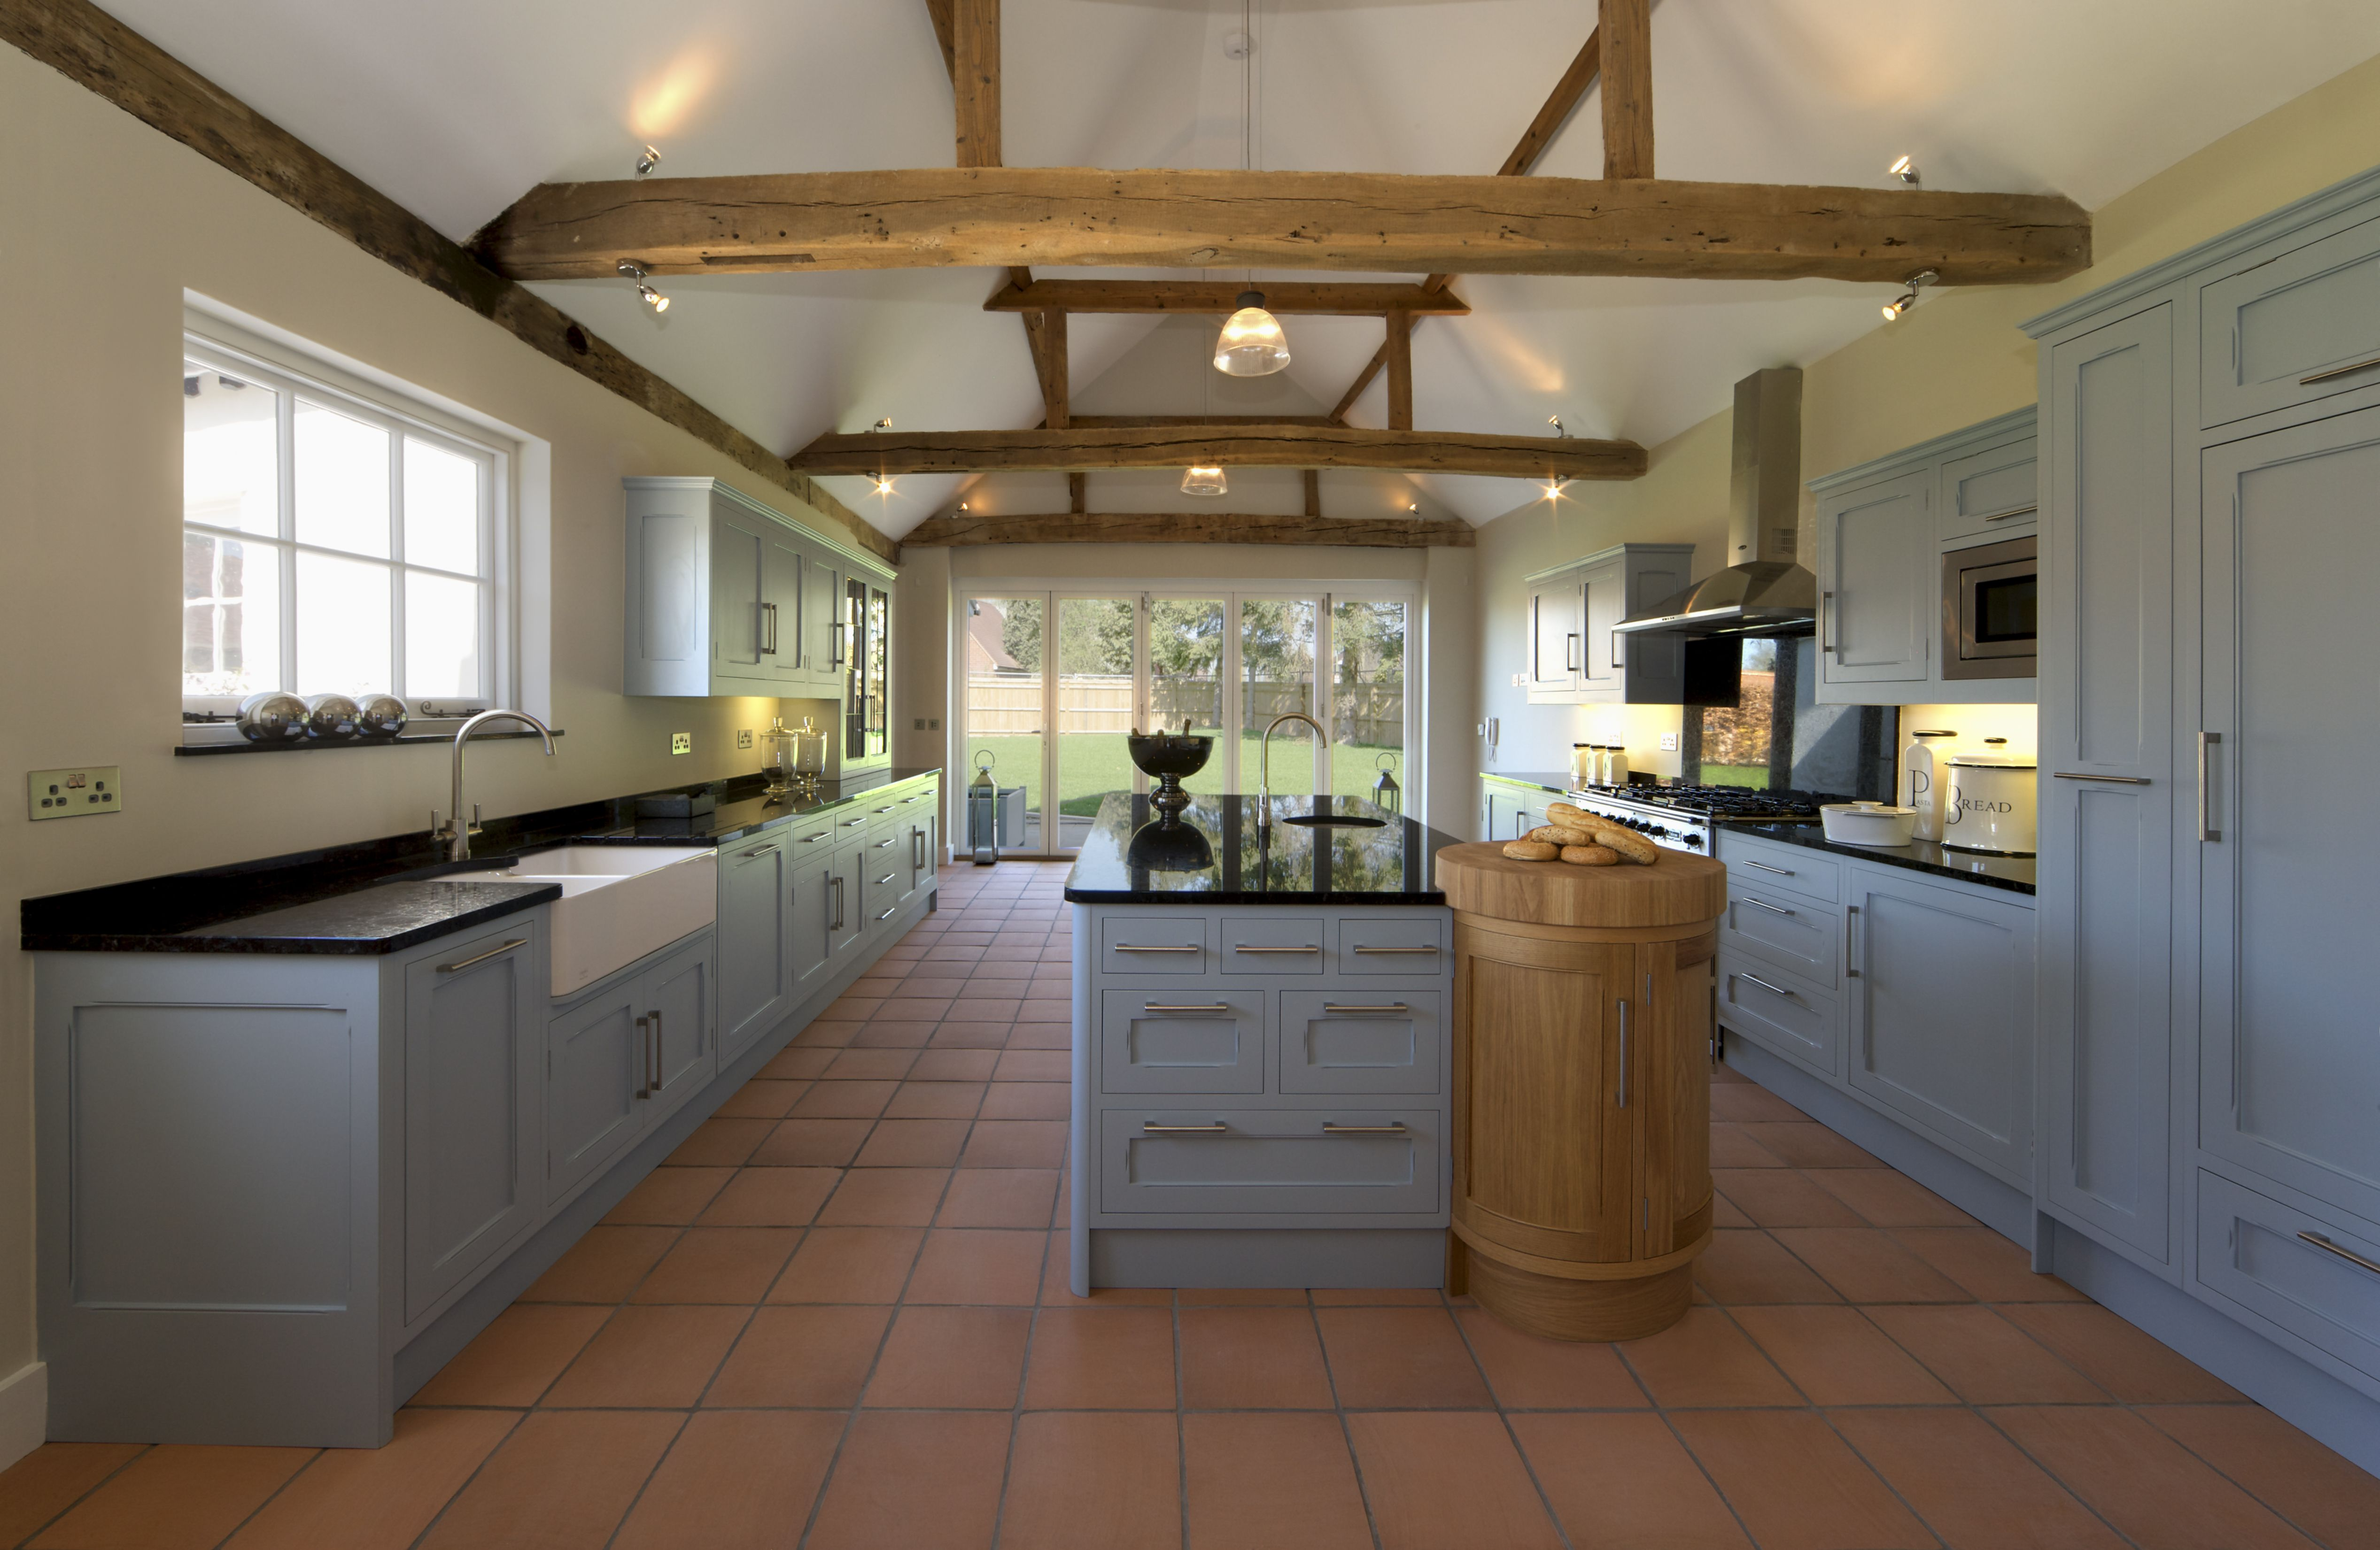 Beautiful Country Kitchen Installed To A Large Extension And Renovation In The Southwest Bristol Are Kitchen Style Kitchen Design Farmhouse Kitchen Decor